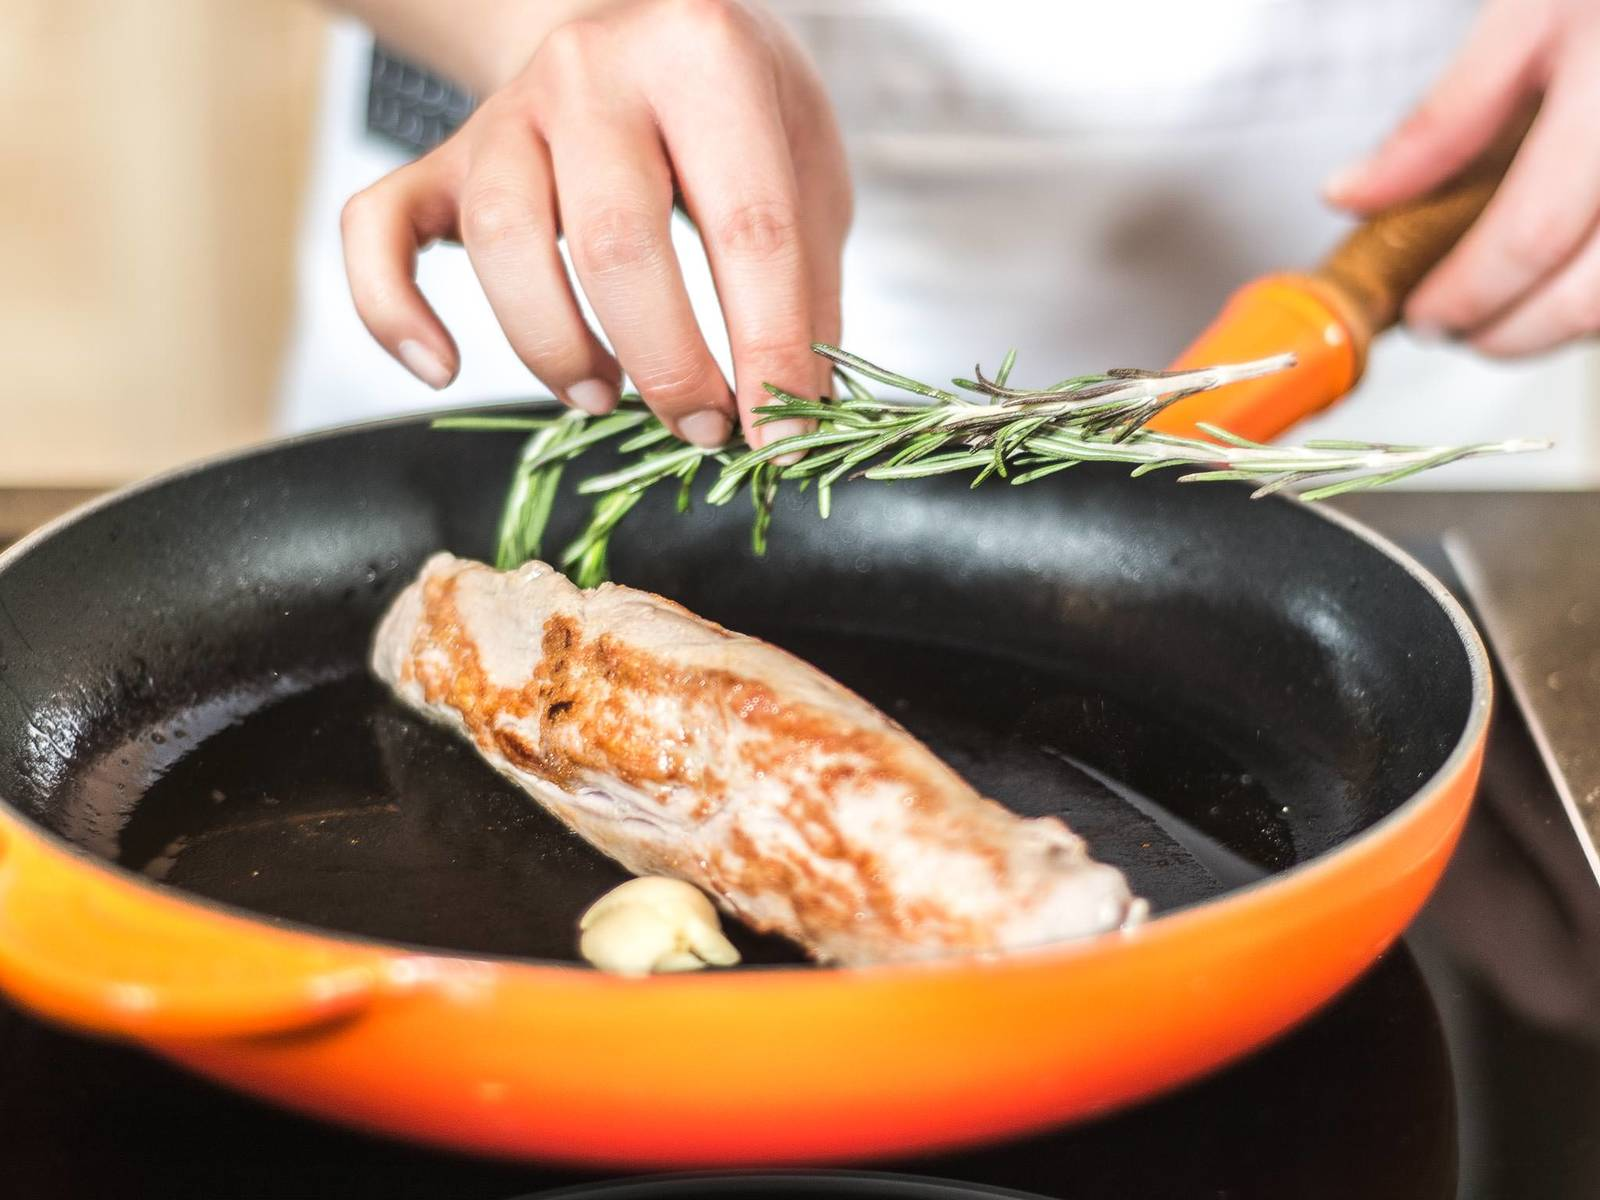 Salt the pork and sear on all sides in a hot pan. Add pepper and cook in a preheated oven at 180°C/355°F with crushed garlic and fresh rosemary for approx. 10 – 15 min.